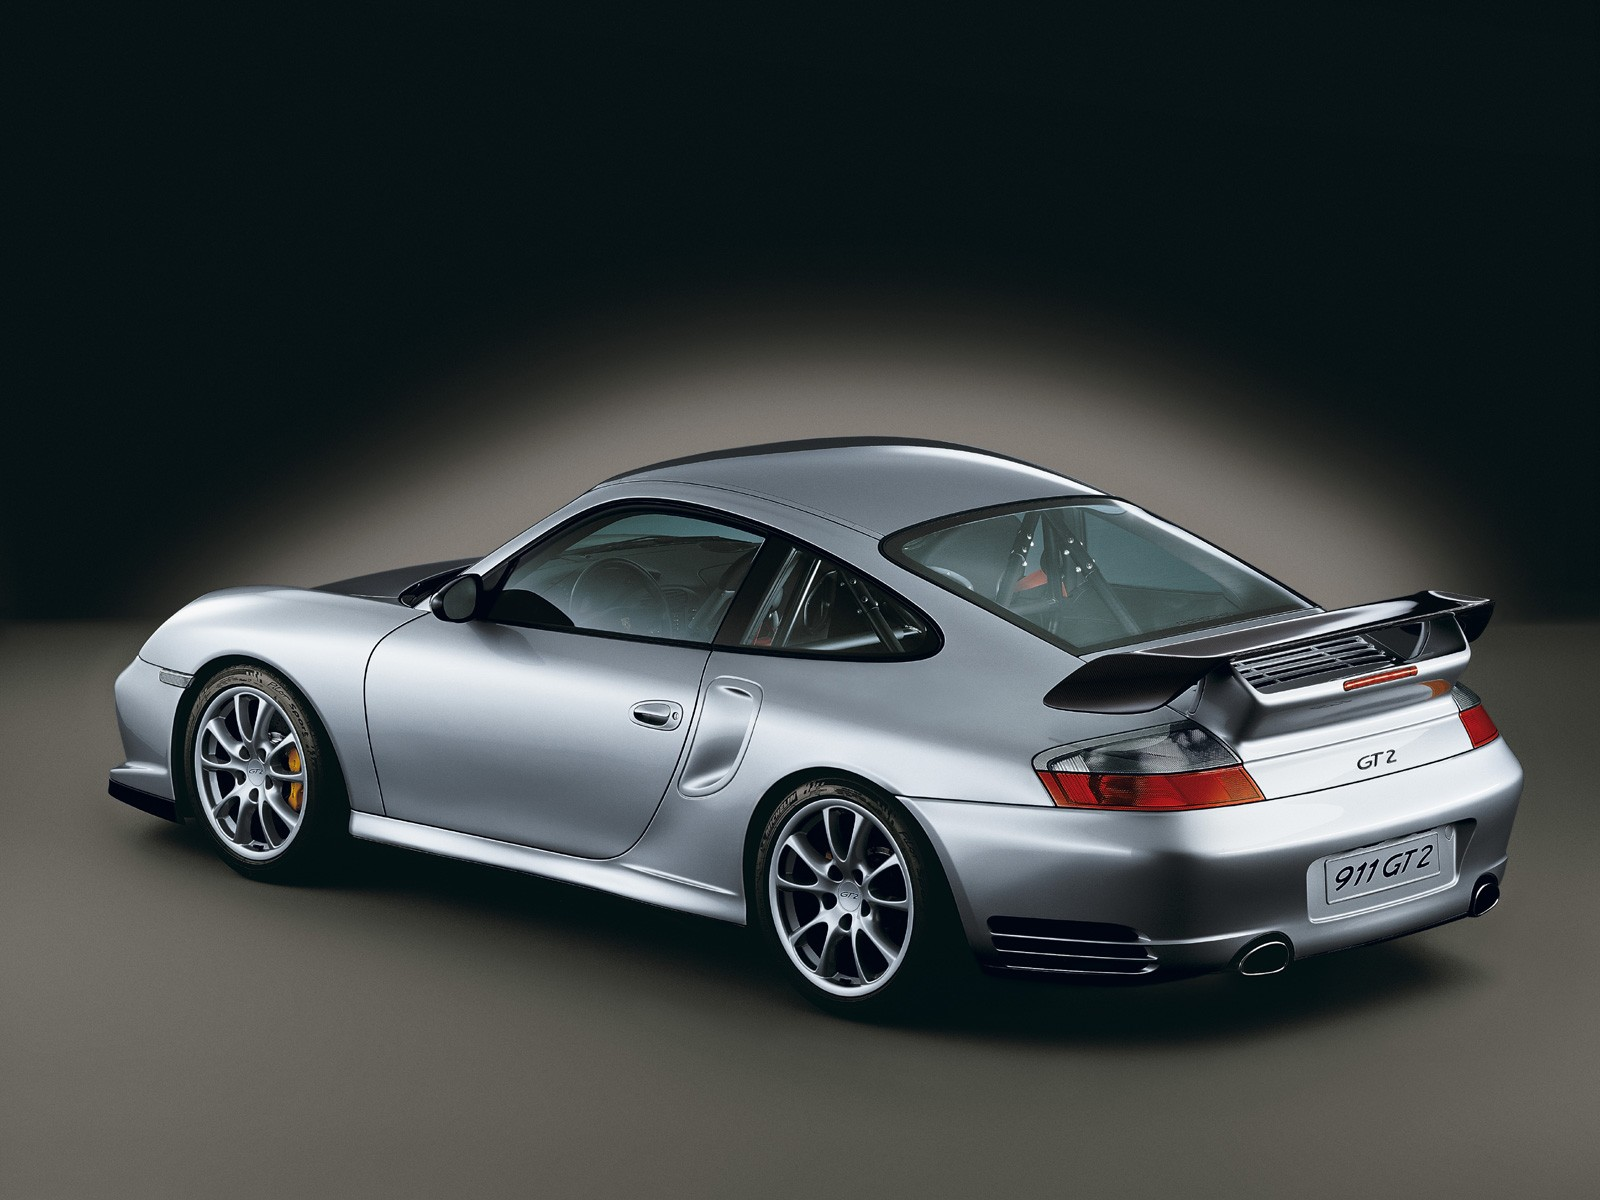 Porsche 911 Gt2 996 Specs Amp Photos 2001 2002 2003